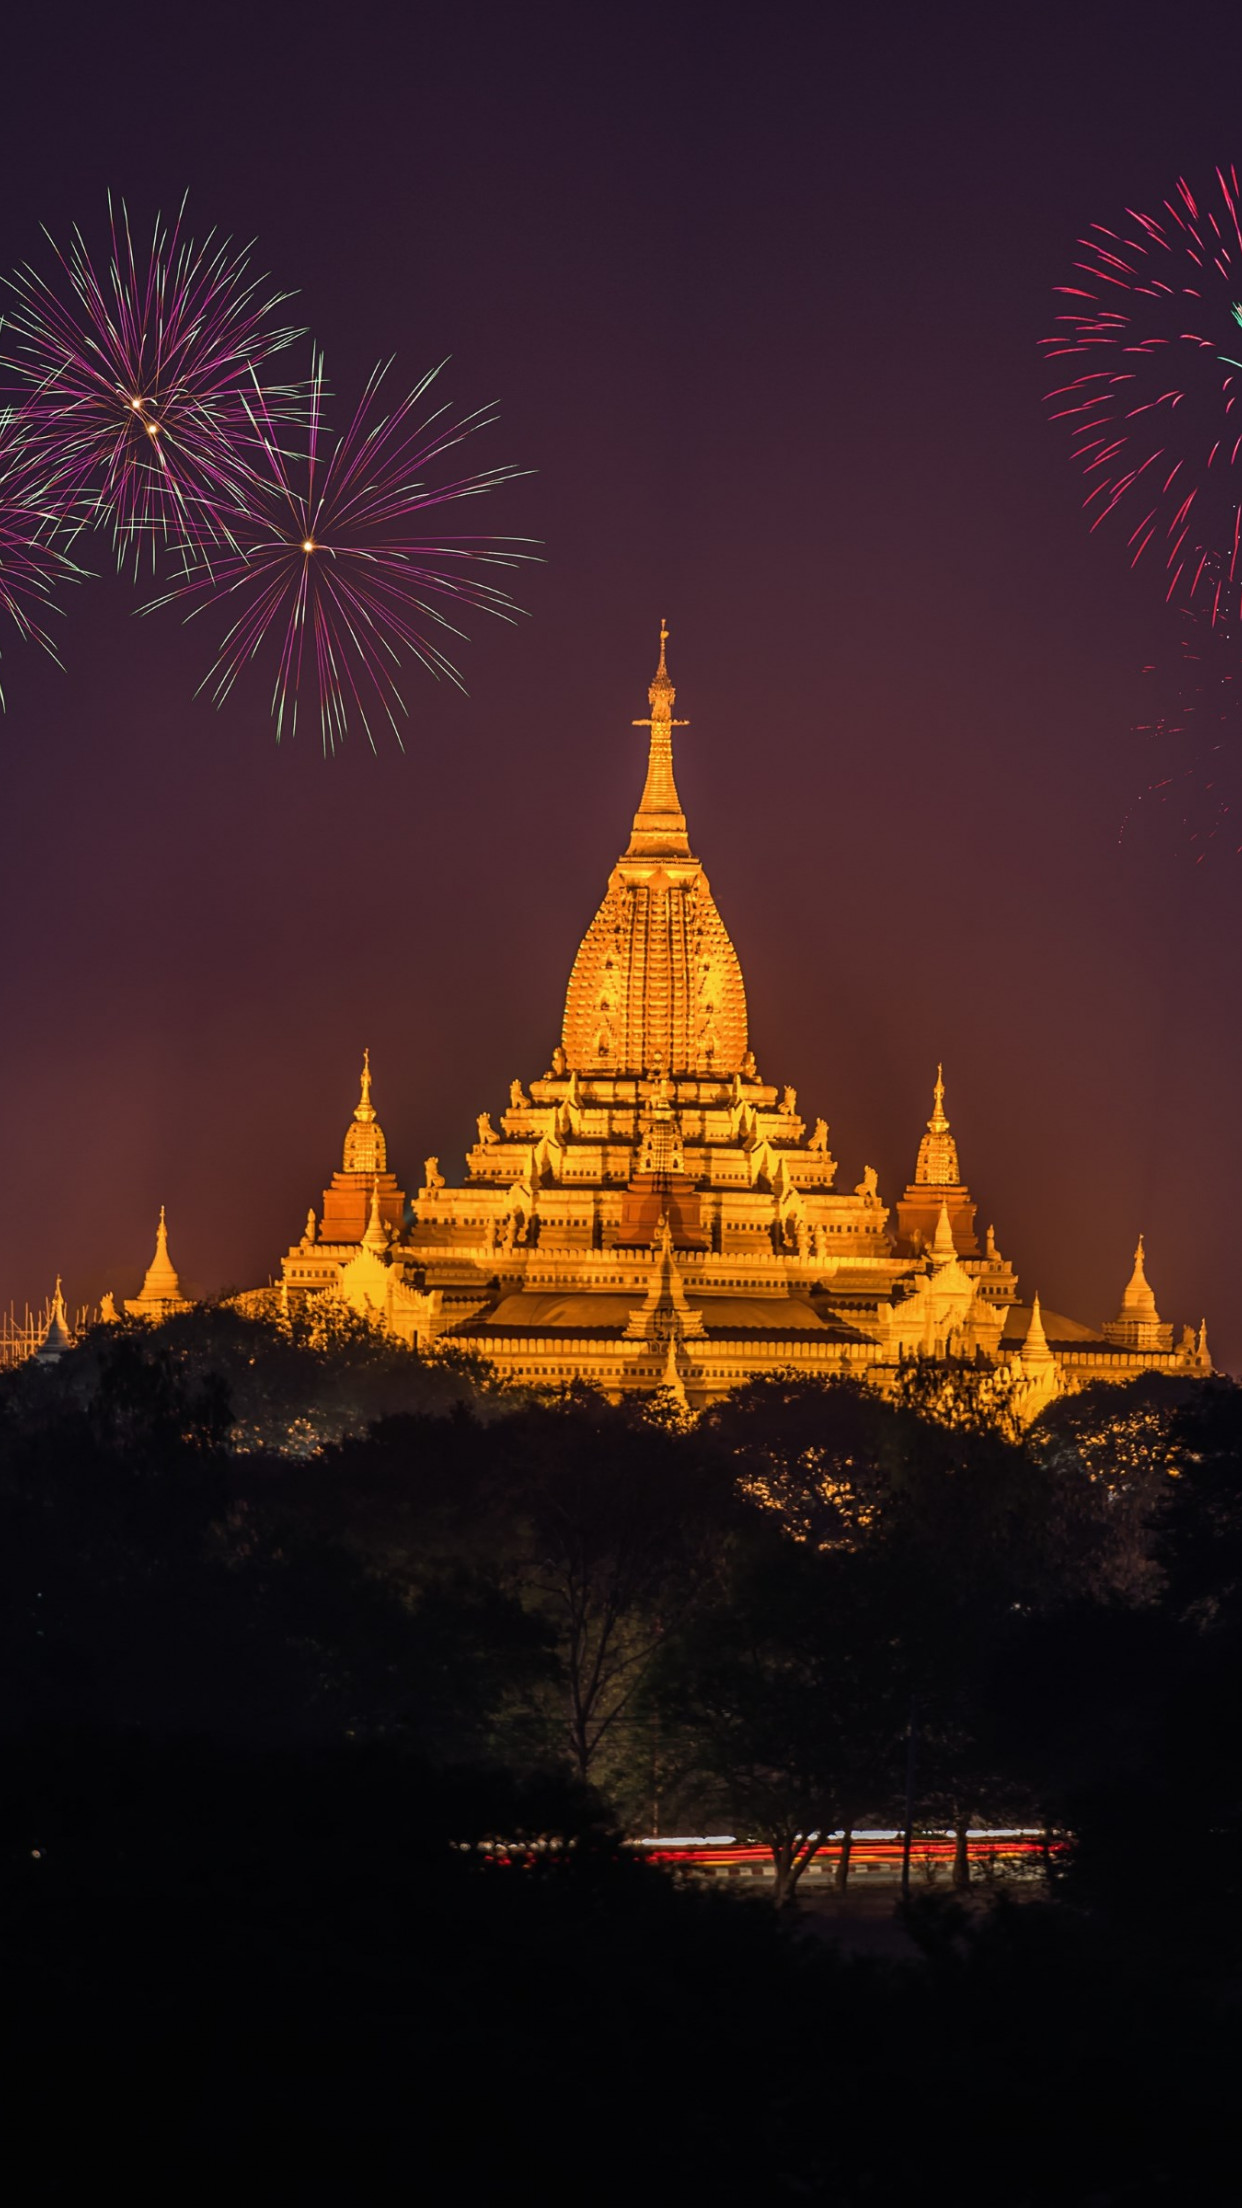 Fireworks above Ananda Phato temple | 1242x2208 wallpaper